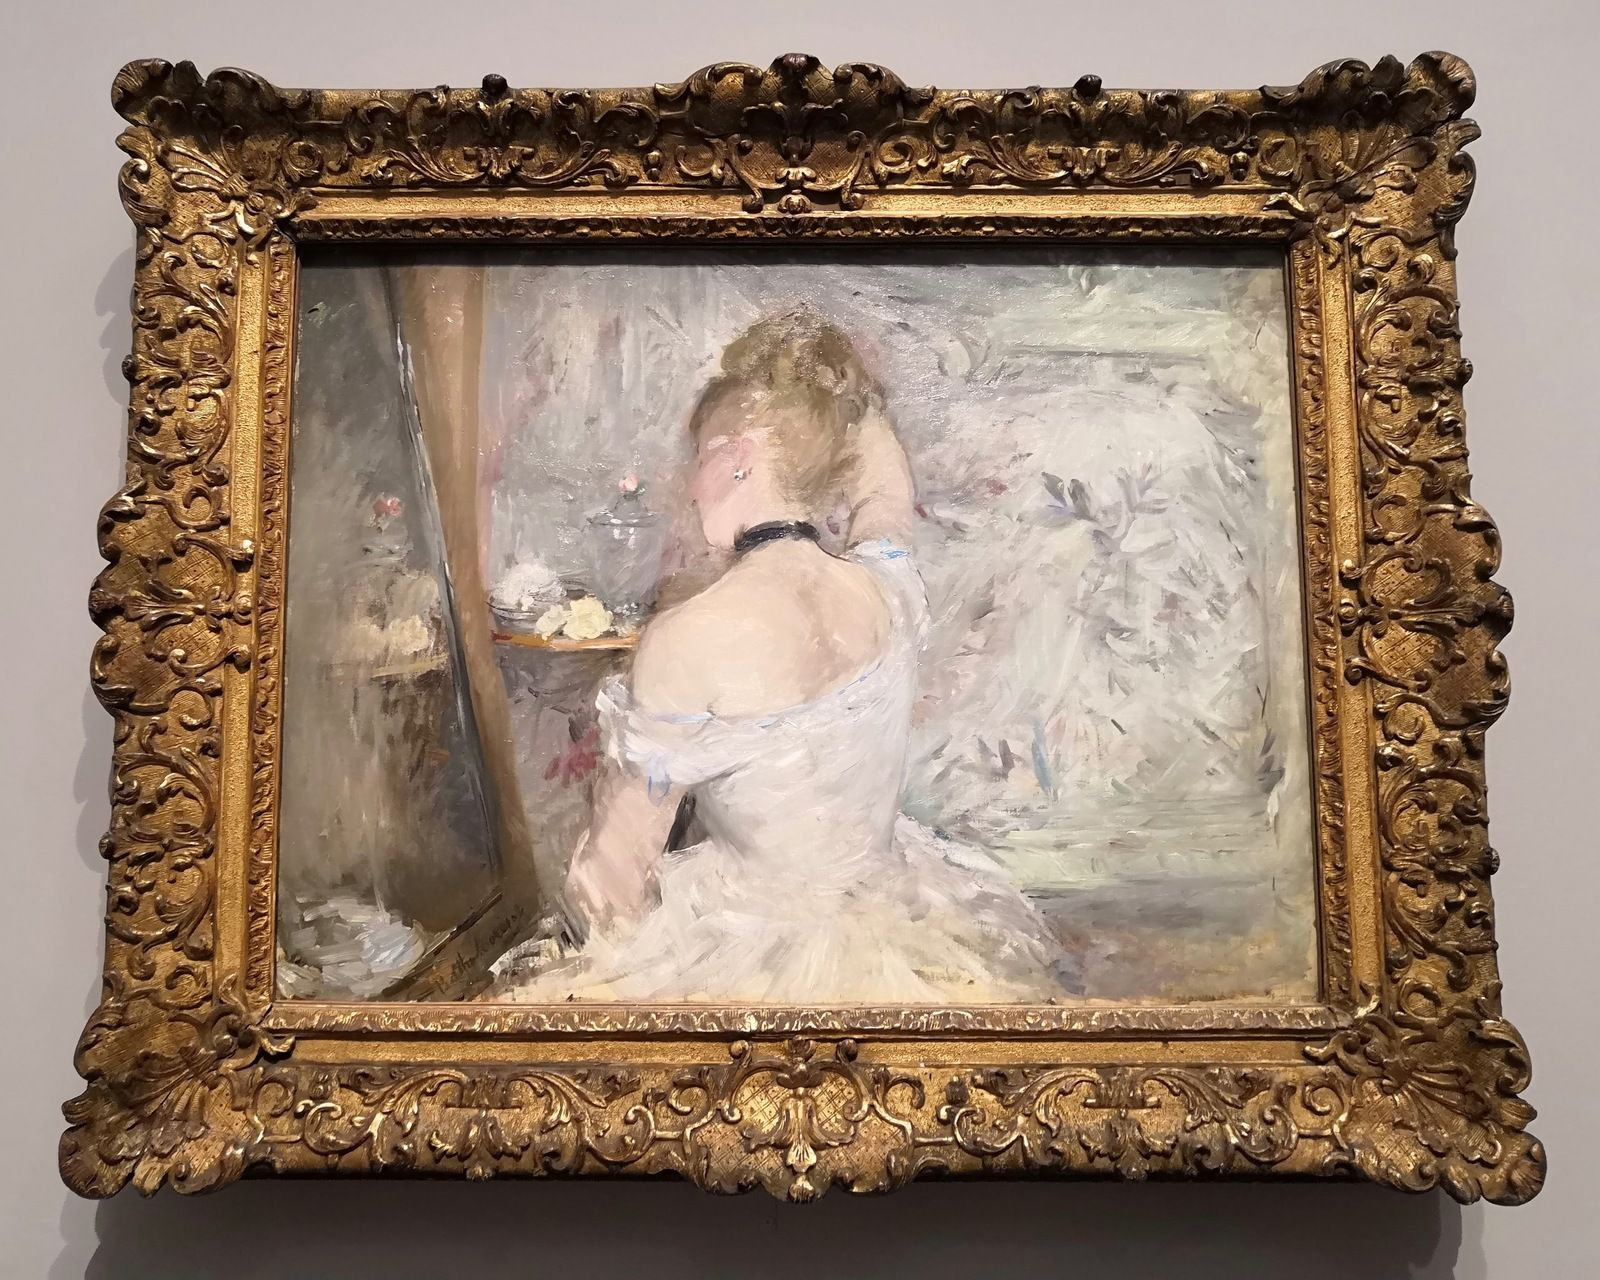 Femme à sa toilette, 1875-1880, Huile sur toile, Chicago, The Art Institute of Chicago, Stickney Fund